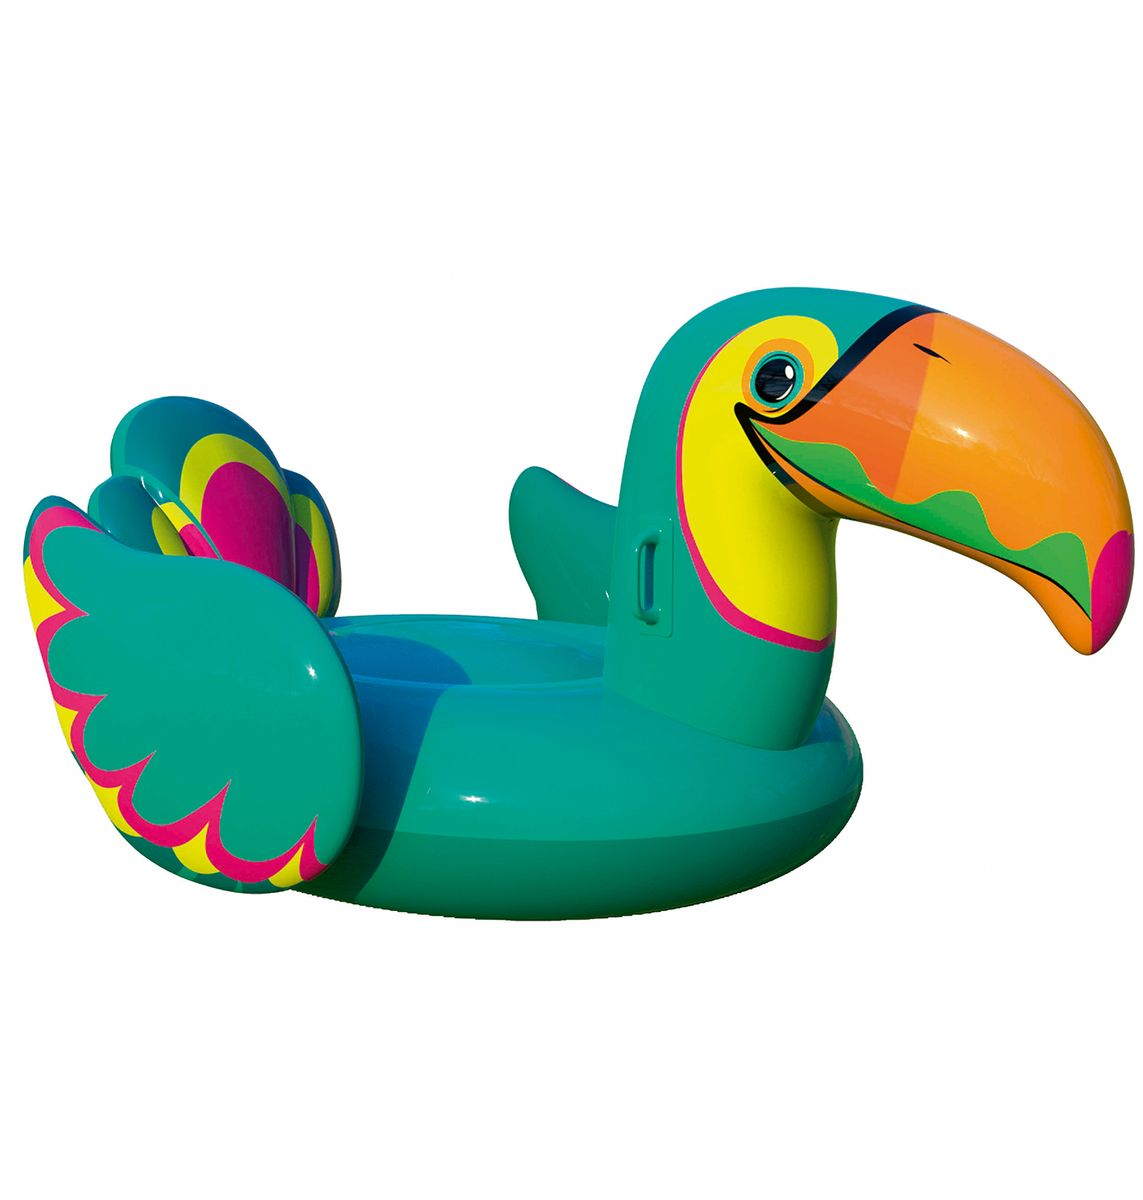 BOUEE GONFLABLE XXL TOUCAN